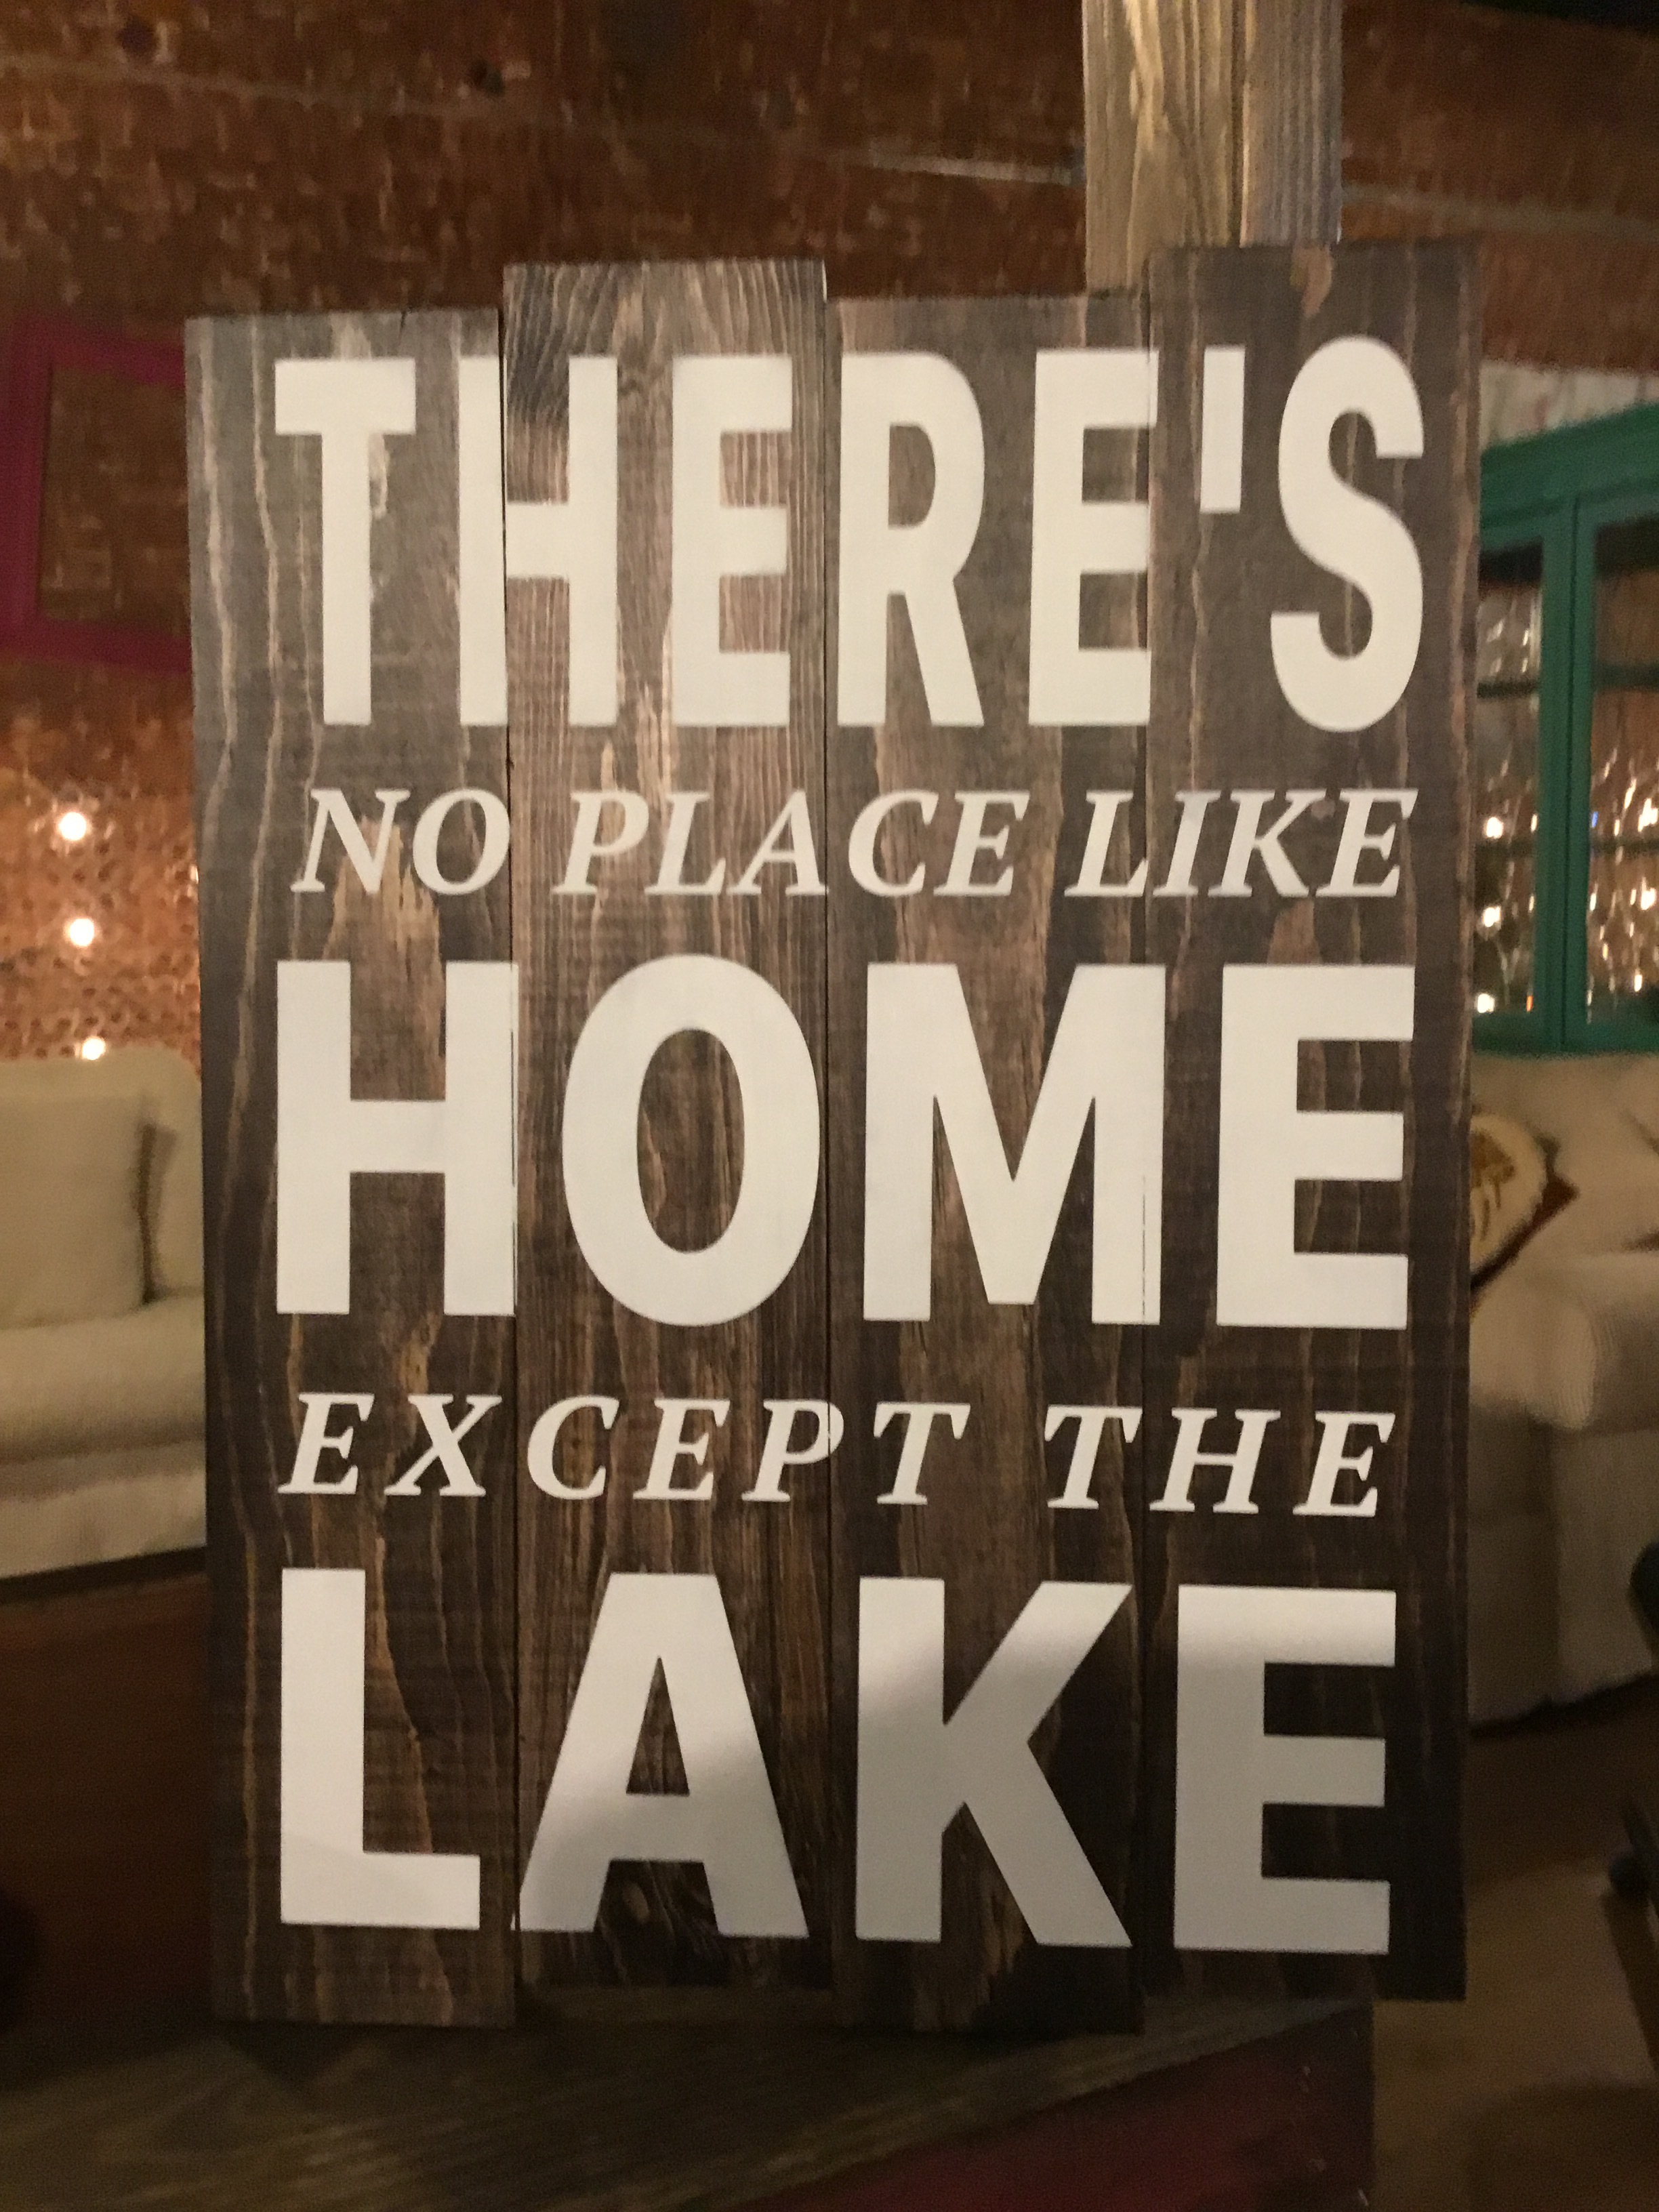 There's no place like home except...